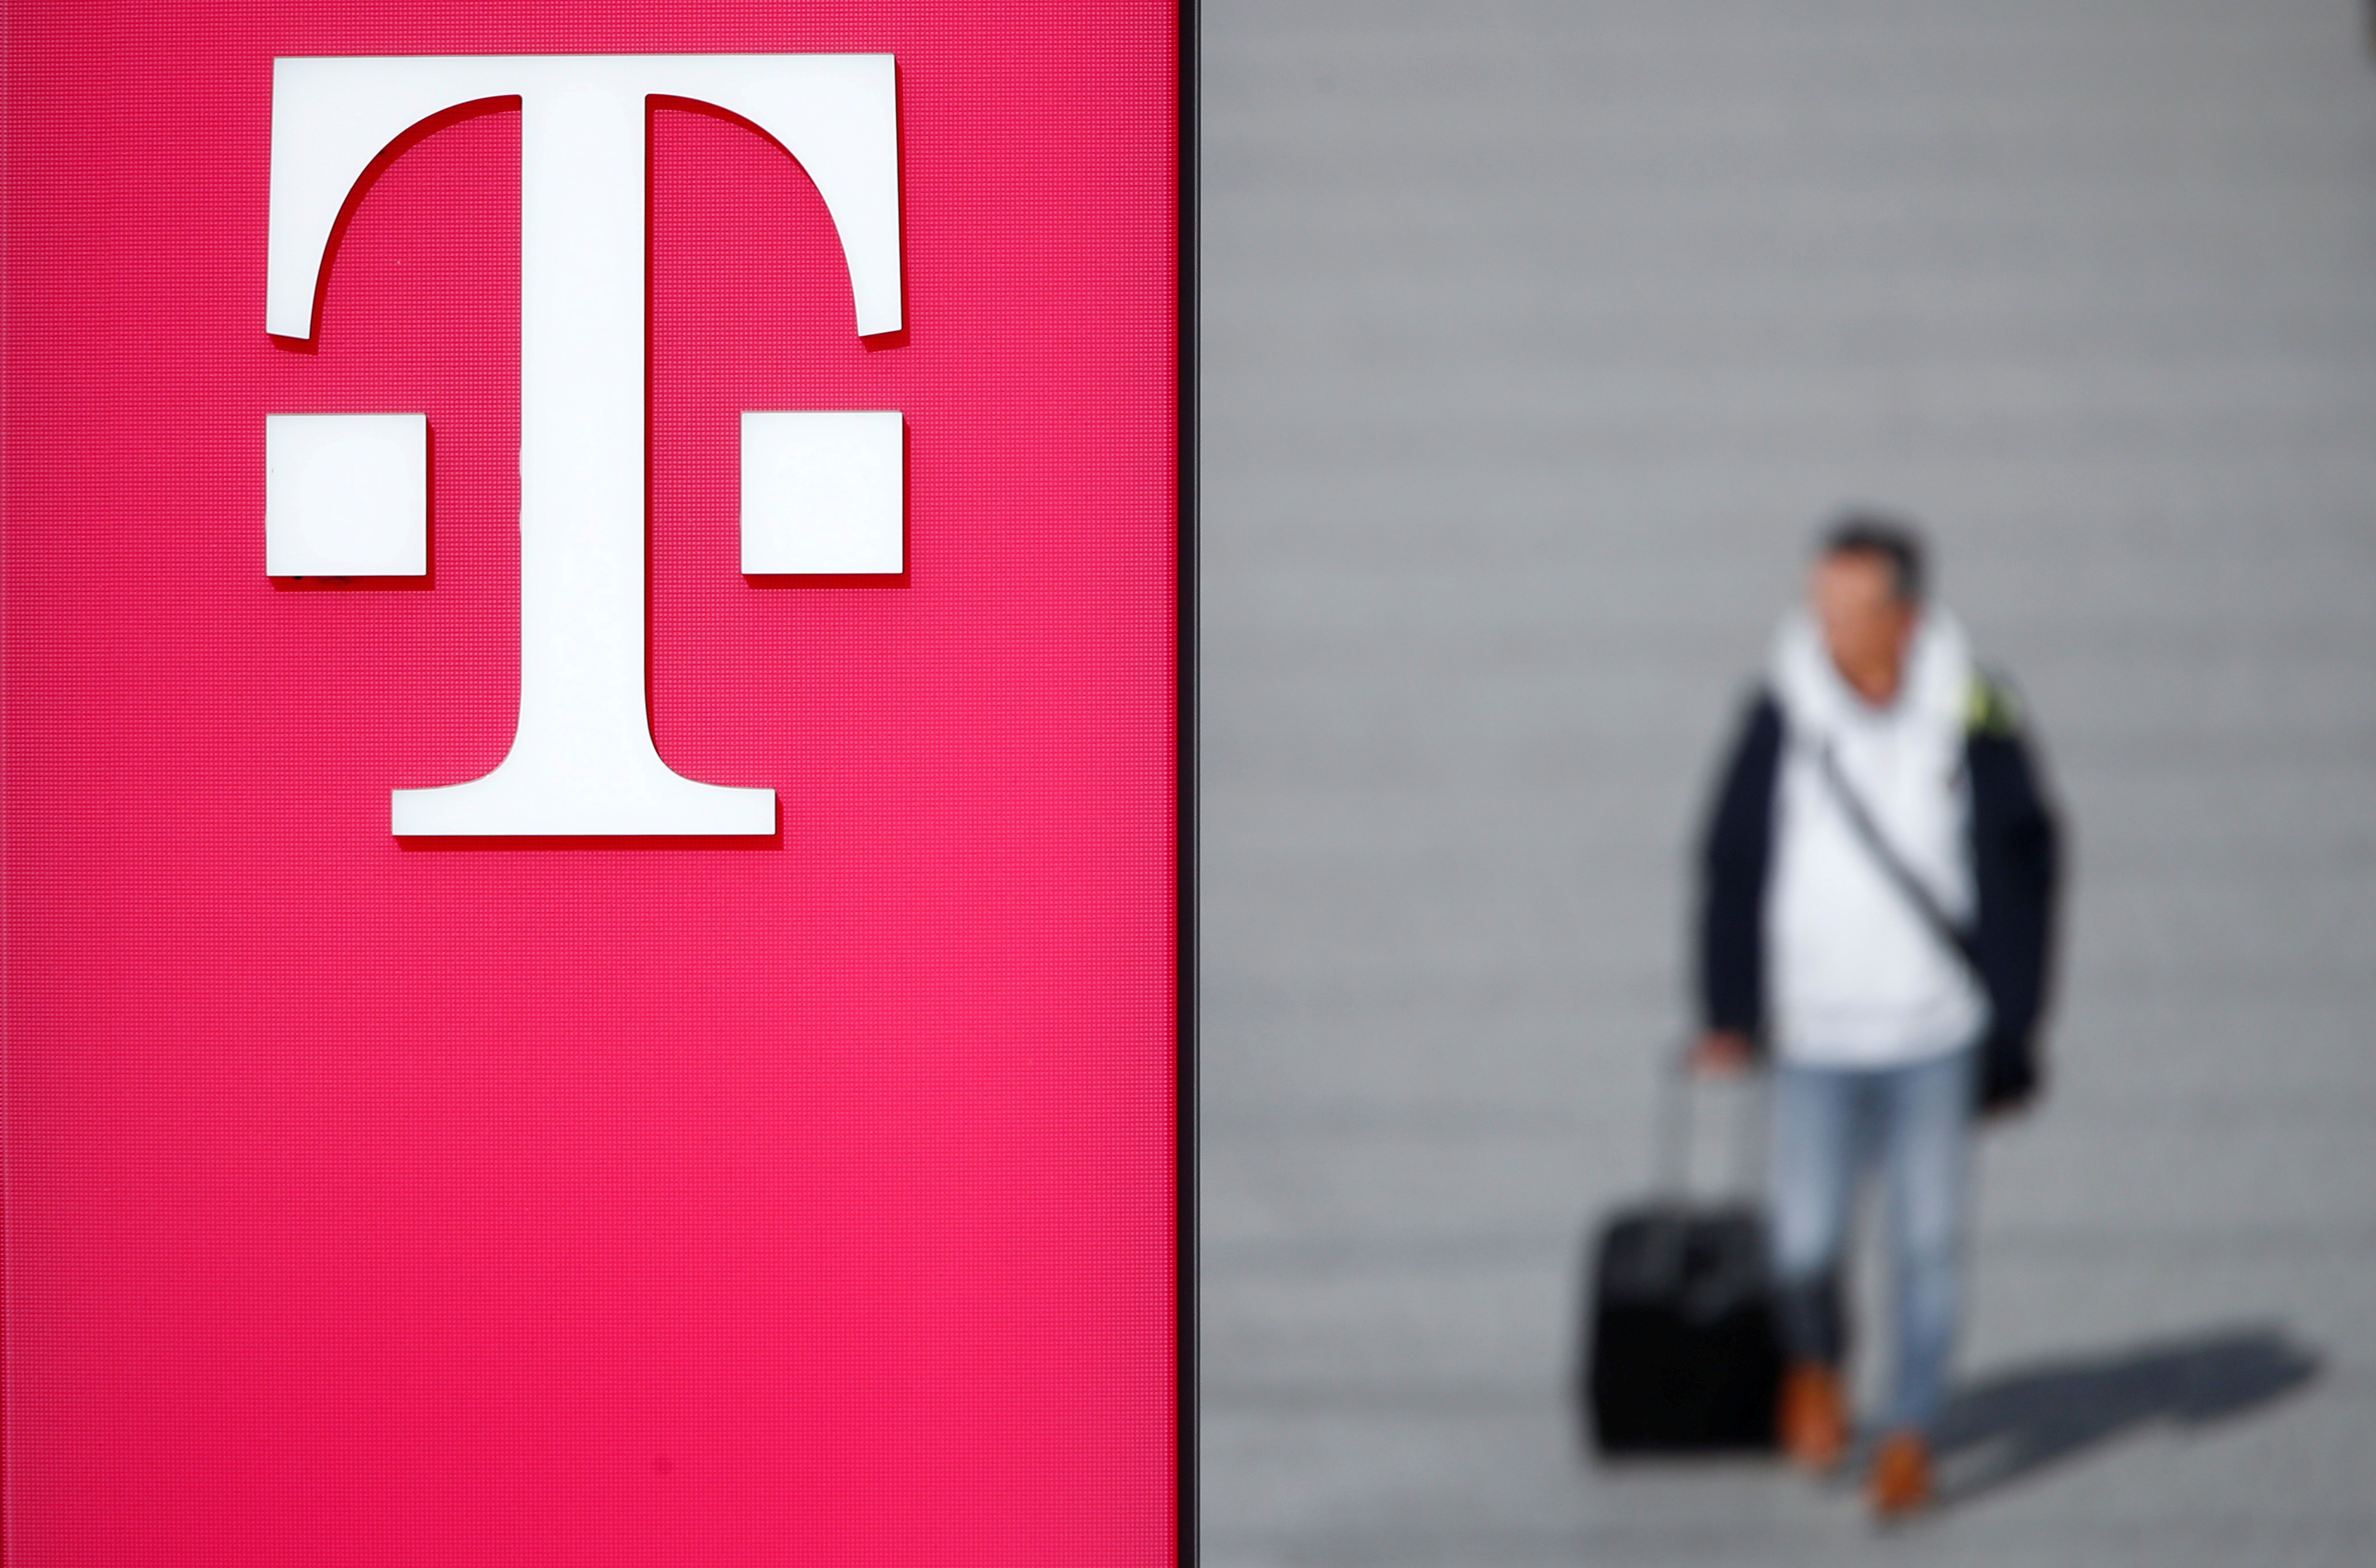 A man walks past the logo of Deutsche Telekom AG at the headquarters of German telecommunications giant in Bonn, Germany, February 19, 2019. REUTERS/Wolfgang Rattay/File Photo